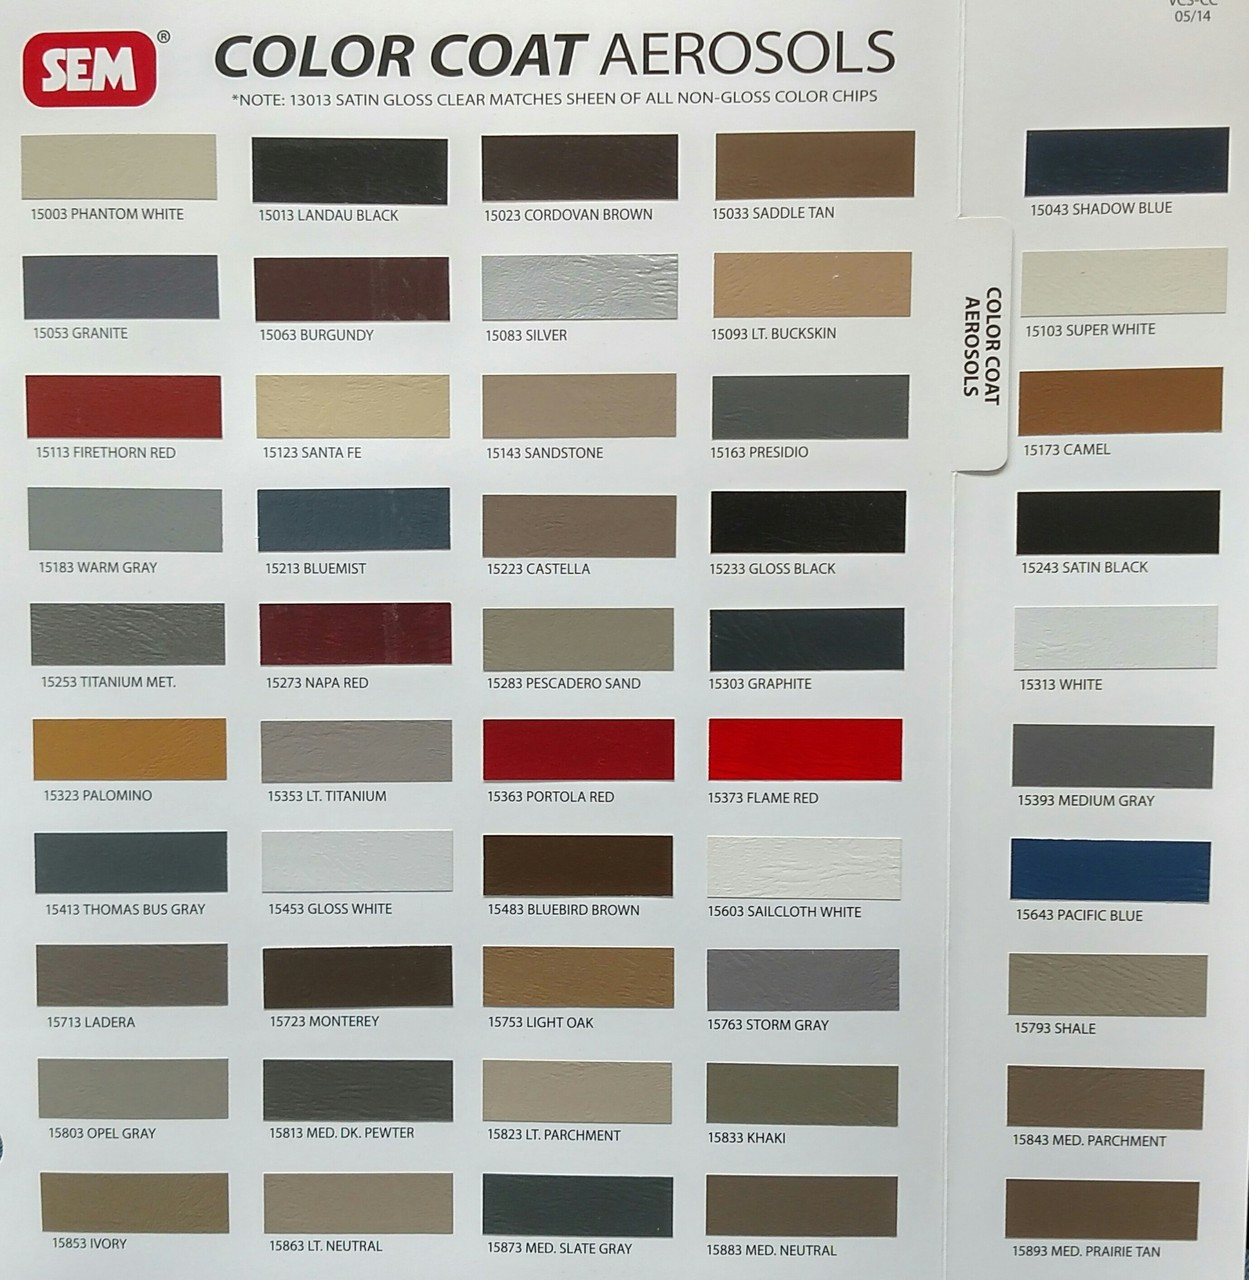 COLOR COAT SAMPLE CARD